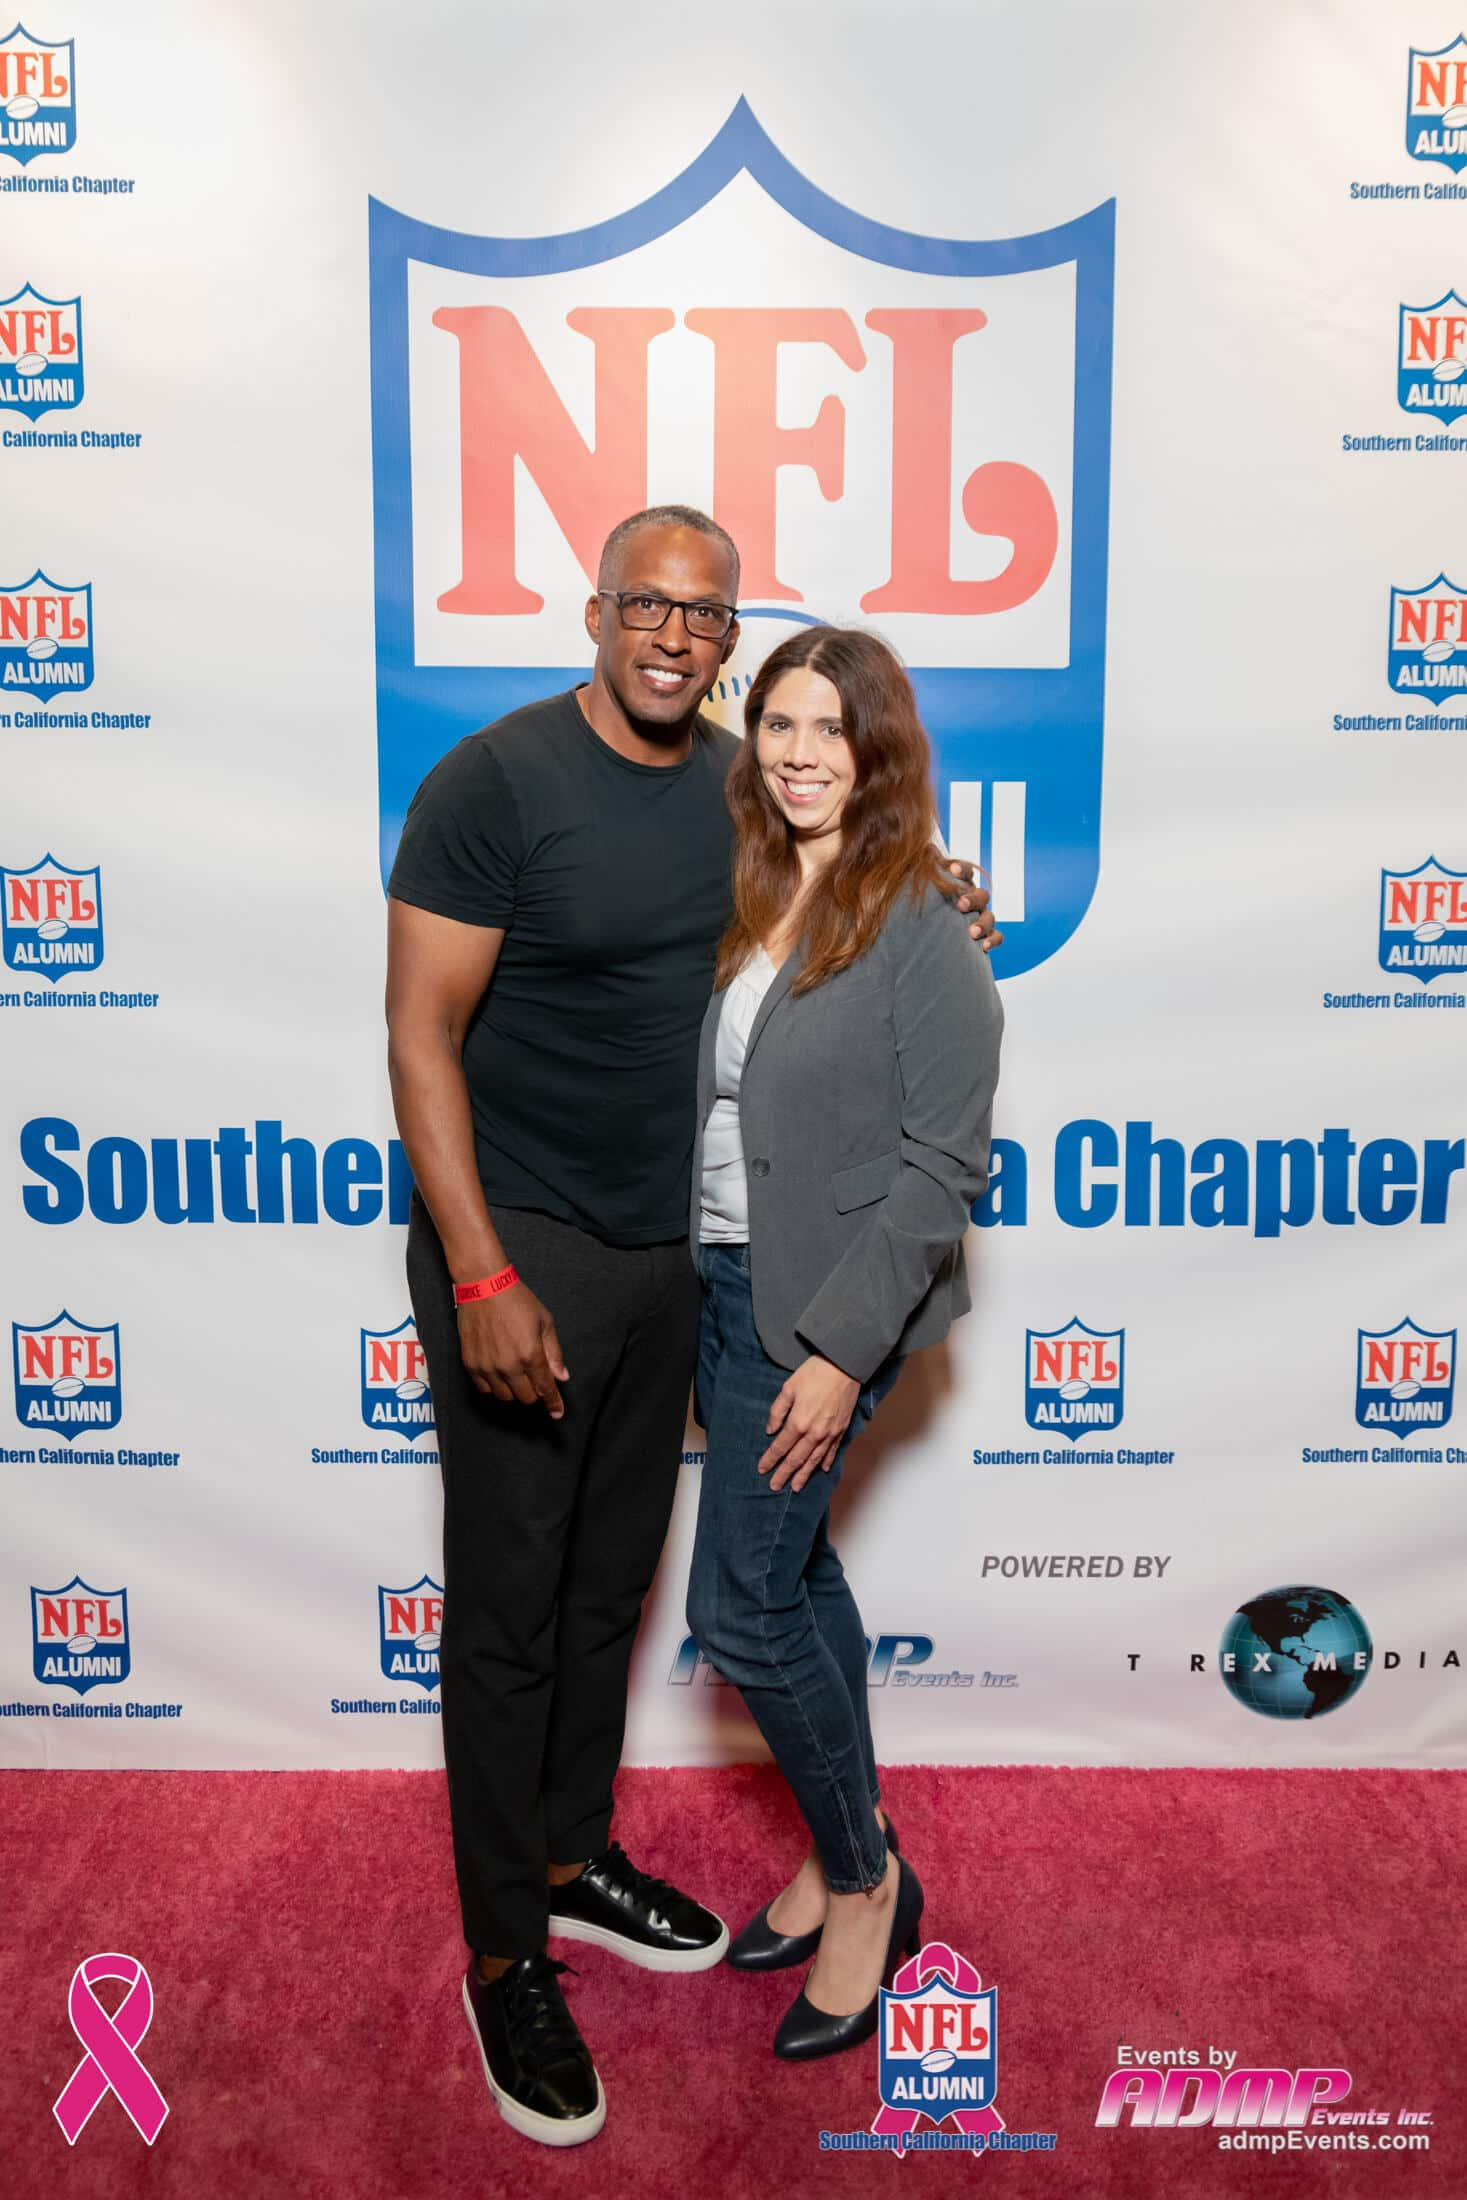 NFL Alumni SoCal Charity Event Series Breast Cancer Event 10-14-19-239